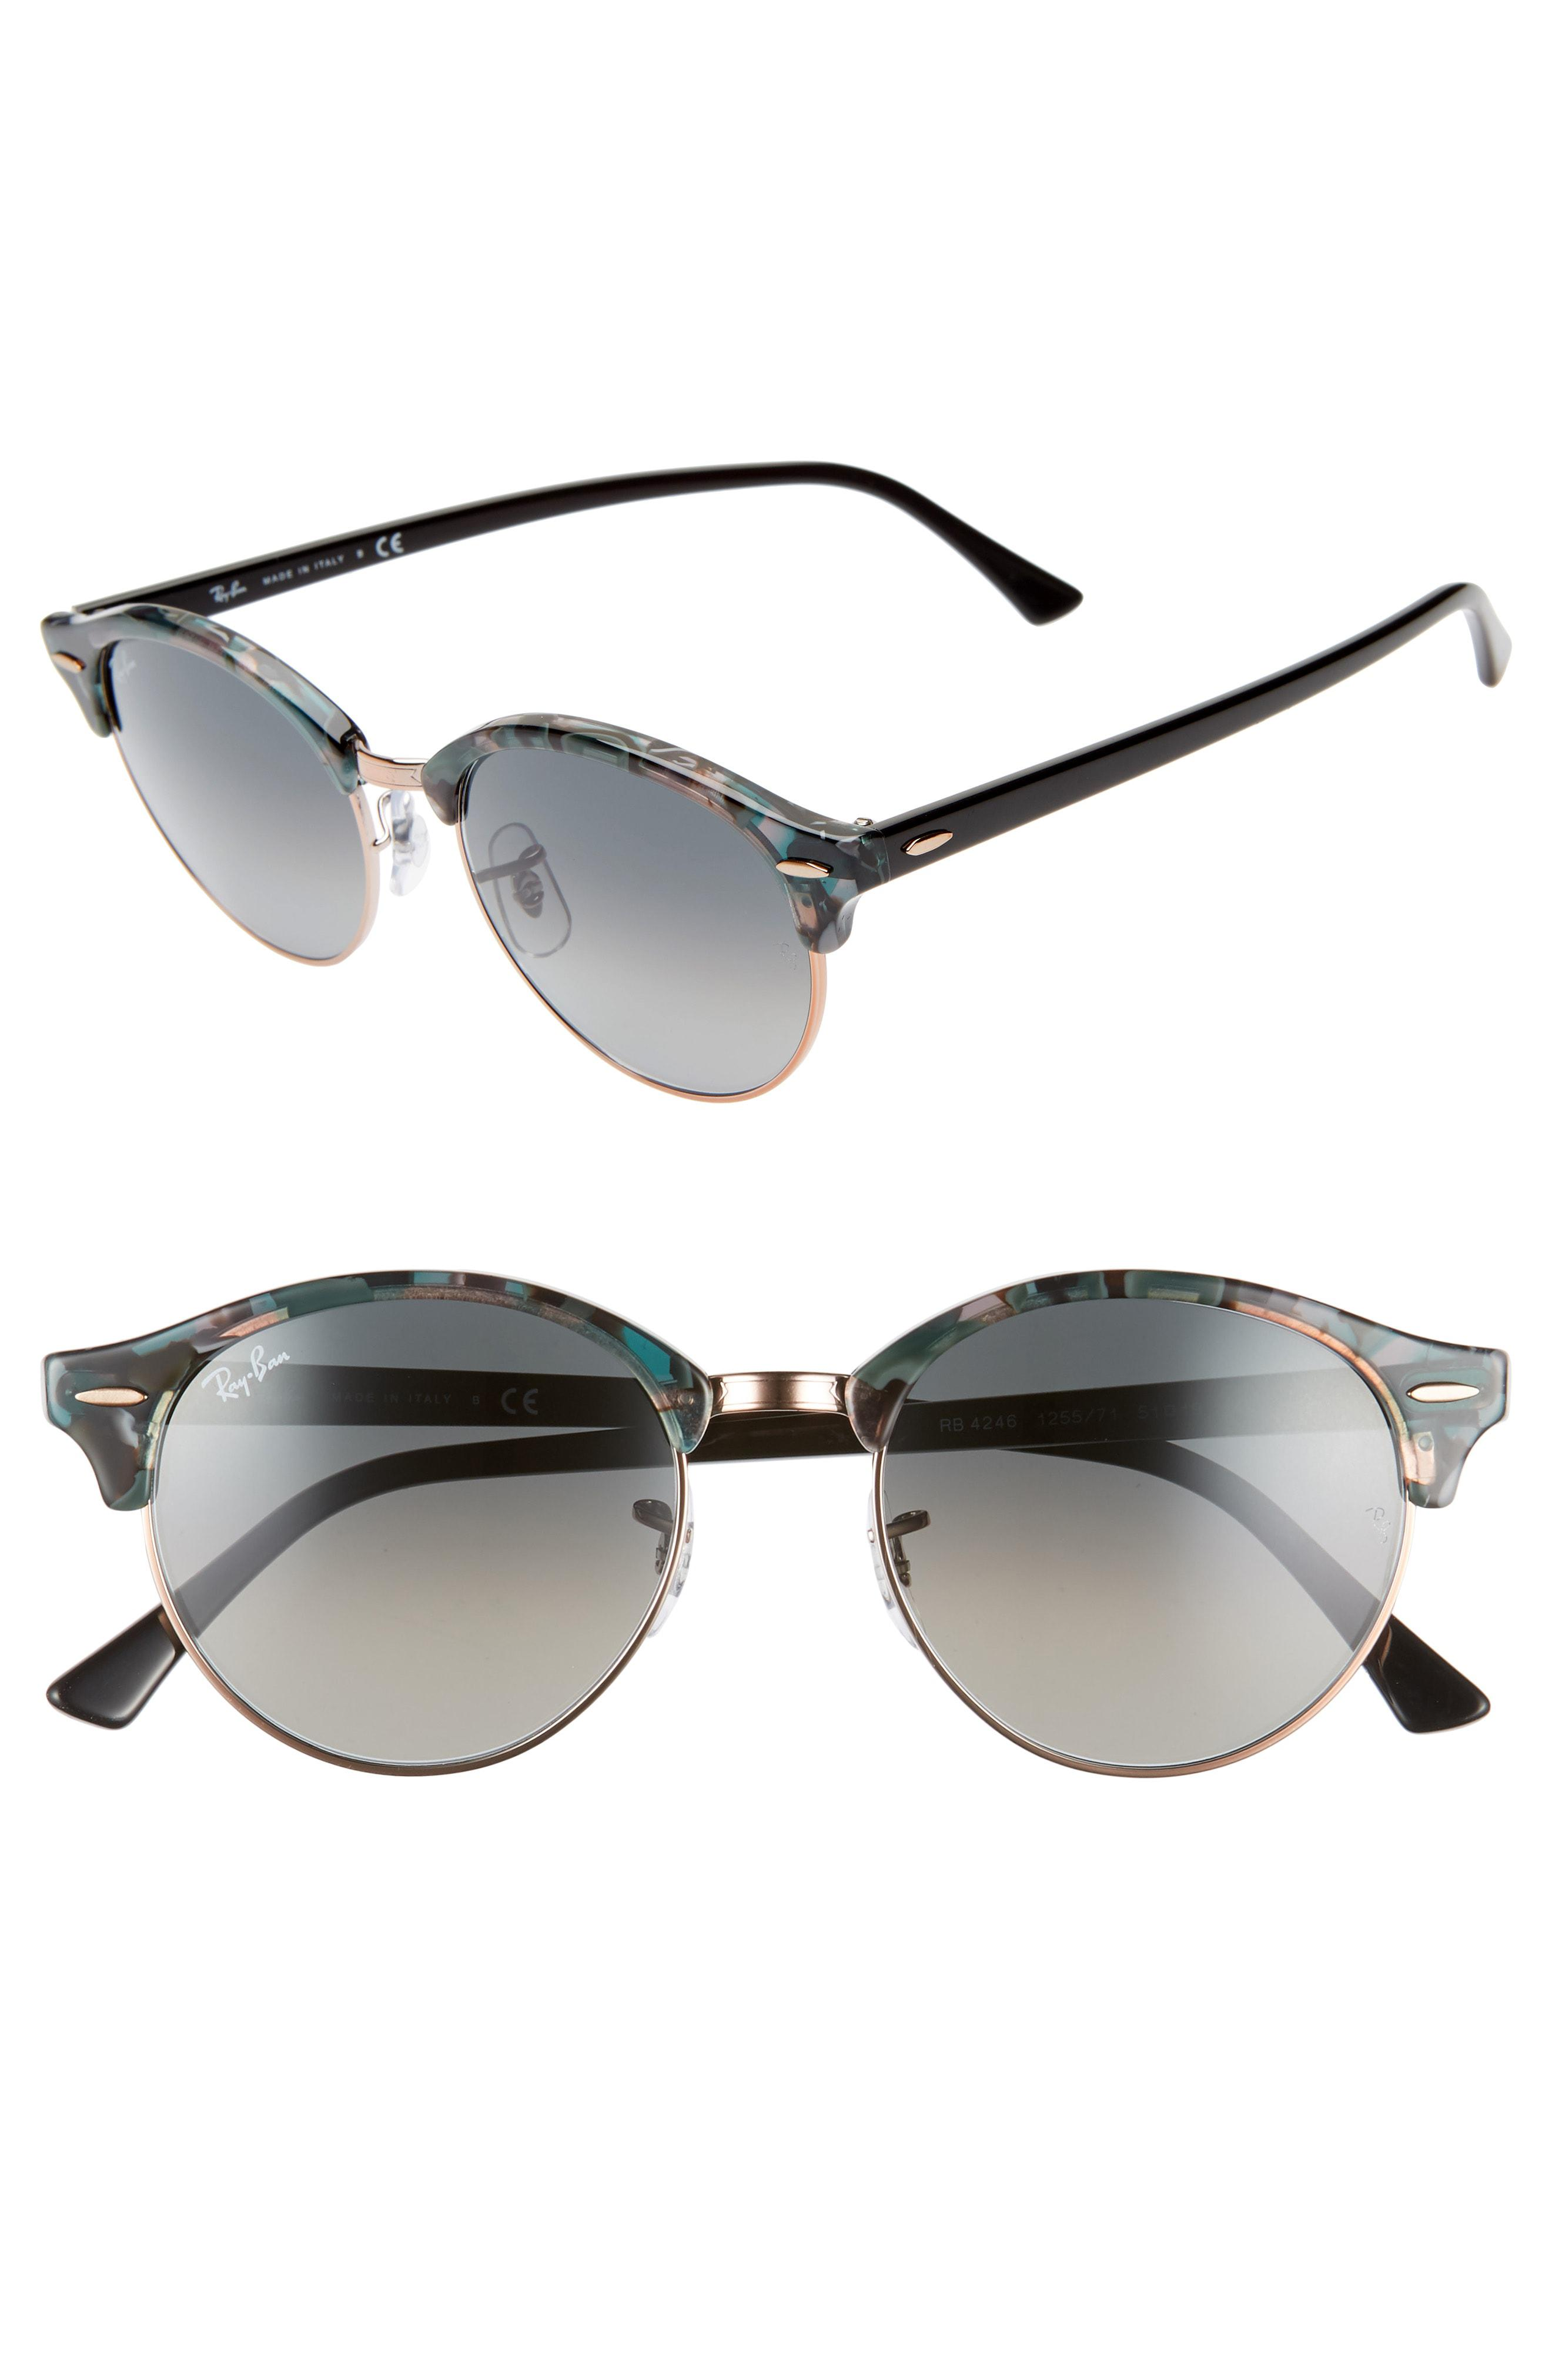 2c52a1e417 Lyst - Ray-Ban Clubround 51mm Round Sunglasses in Brown